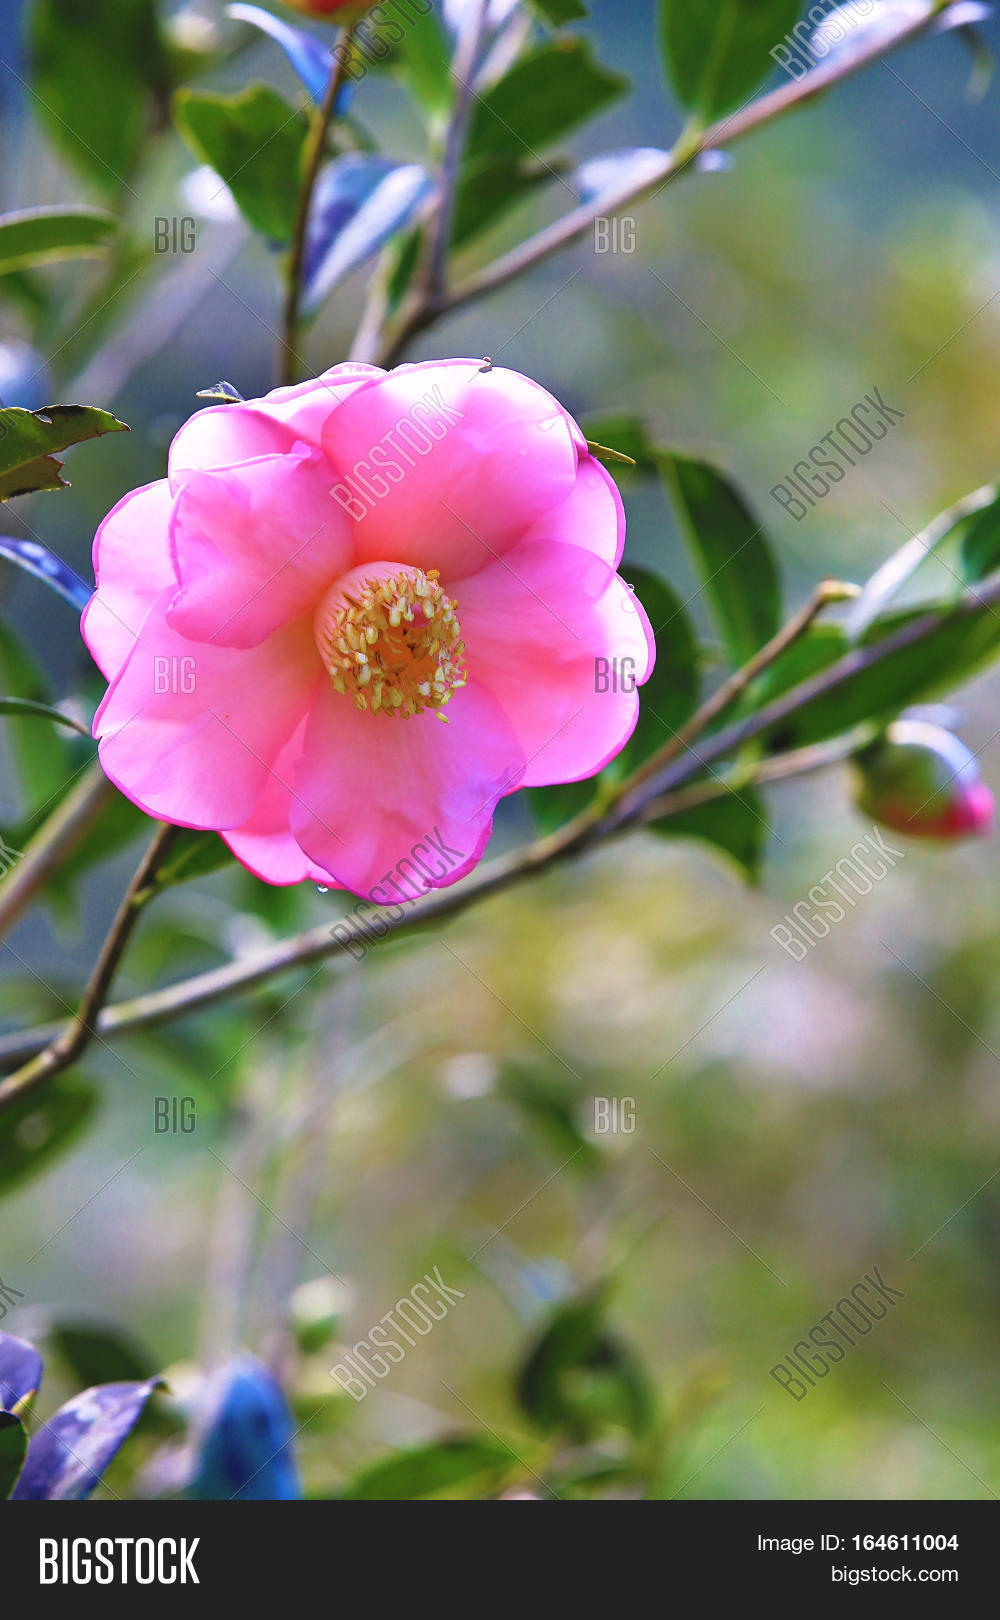 Pink Camellia Flower Image Photo Free Trial Bigstock